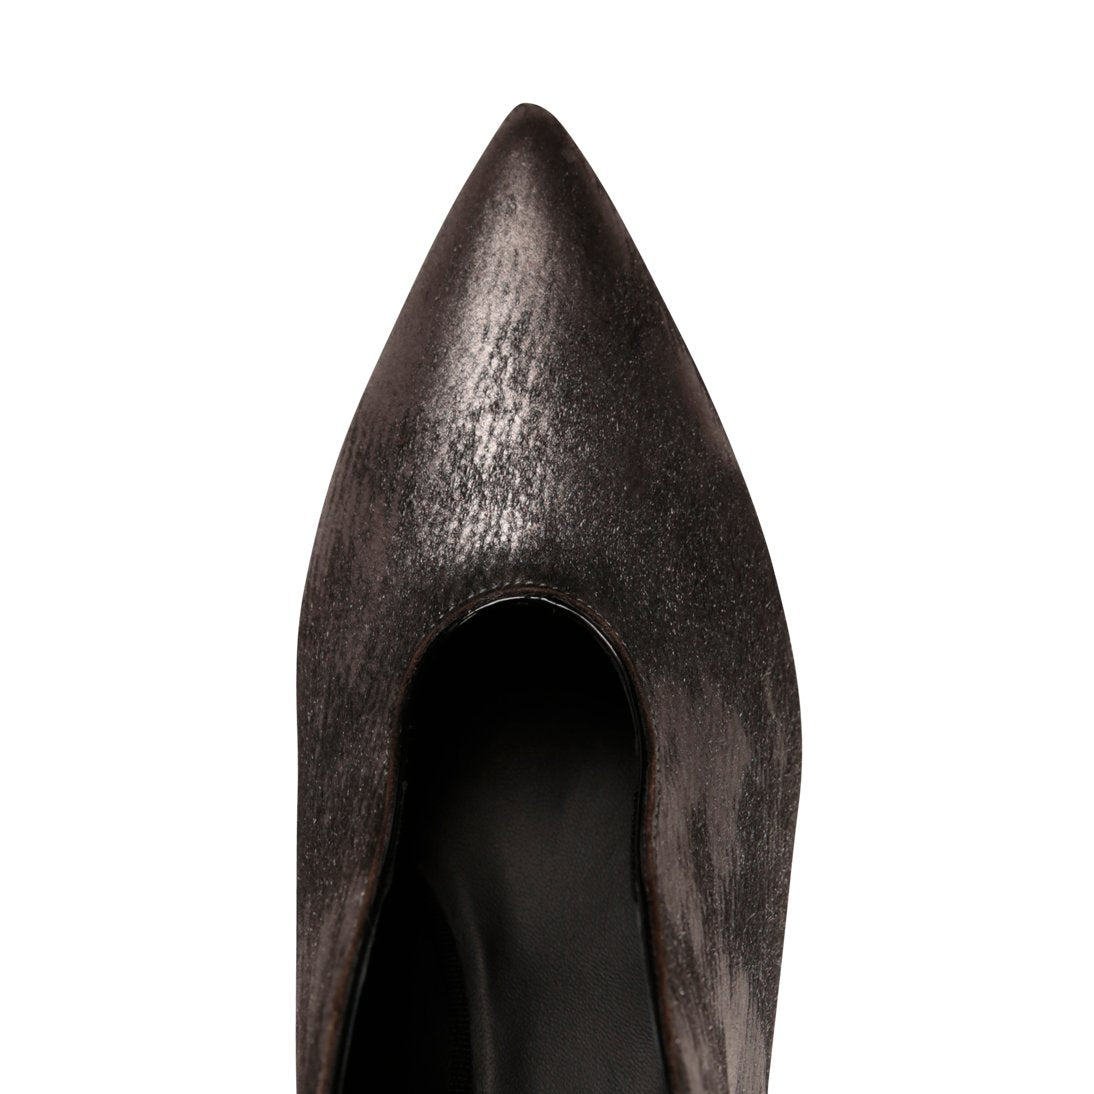 URBINO - Calf Hair Vintage Nero, VIAJIYU - Women's Hand Made Sustainable Luxury Shoes. Made in Italy. Made to Order.